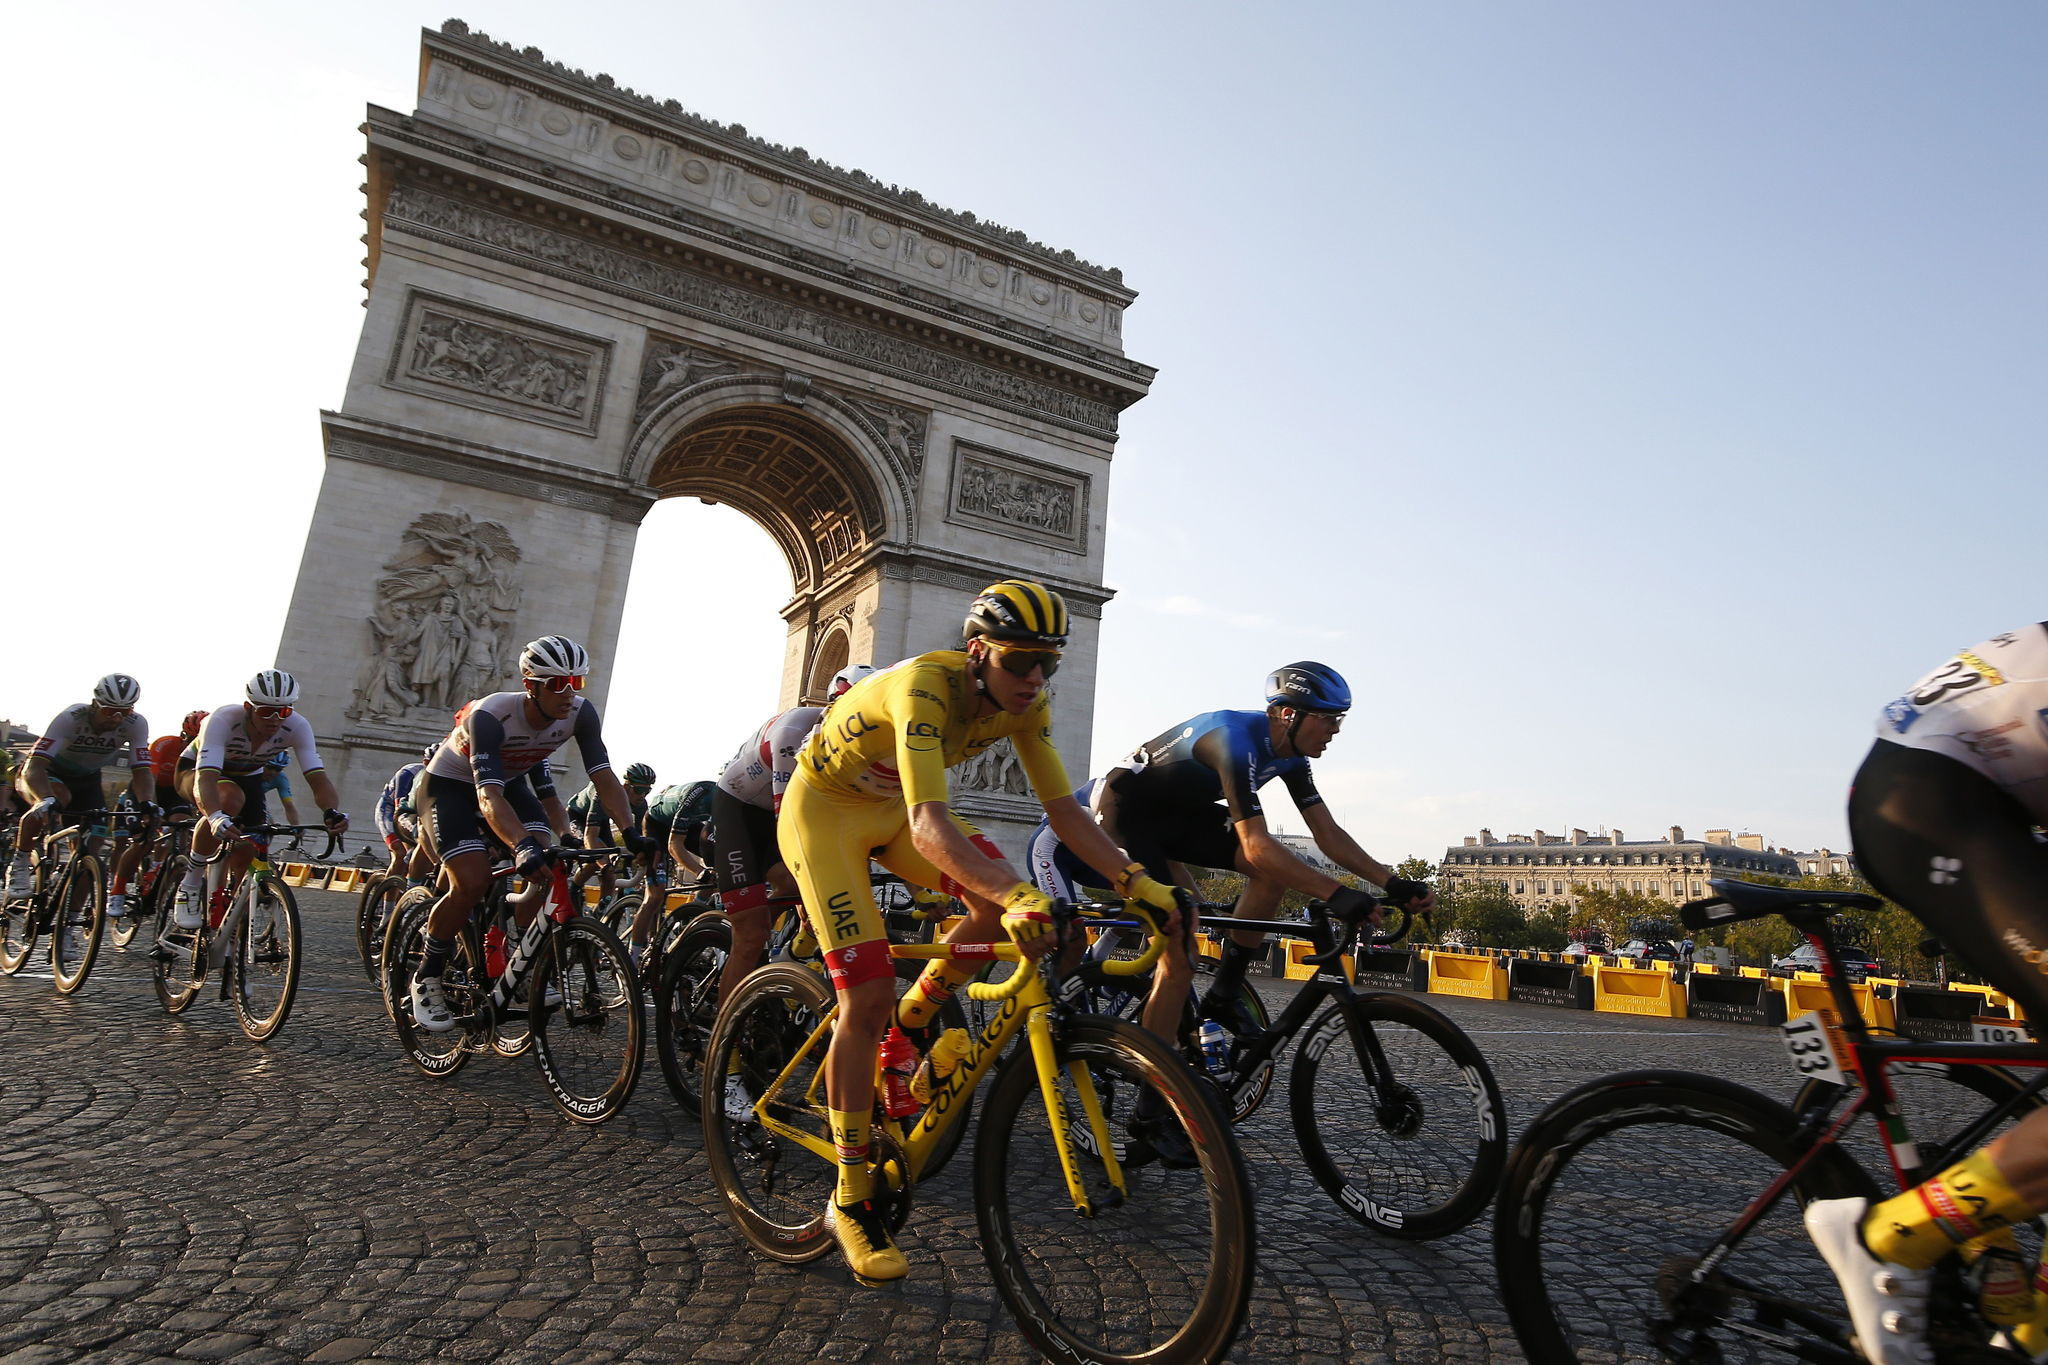 Paris (France), 20/09/2020.- Slovenian rider Tadej lt;HIT gt;Pogacar lt;/HIT gt; (C) of UAE-Team Emirates wearing the overall leaders yellow jersey in action with the peloton on the Champs Elysees avenue during the 21st stage of the Tour de France cycling race over 122 km from Mantes la Jolie to Paris, France, 20 September 2020. (Ciclismo, Francia, Eslovenia) EFE/EPA/SEBASTIEN NOGIER